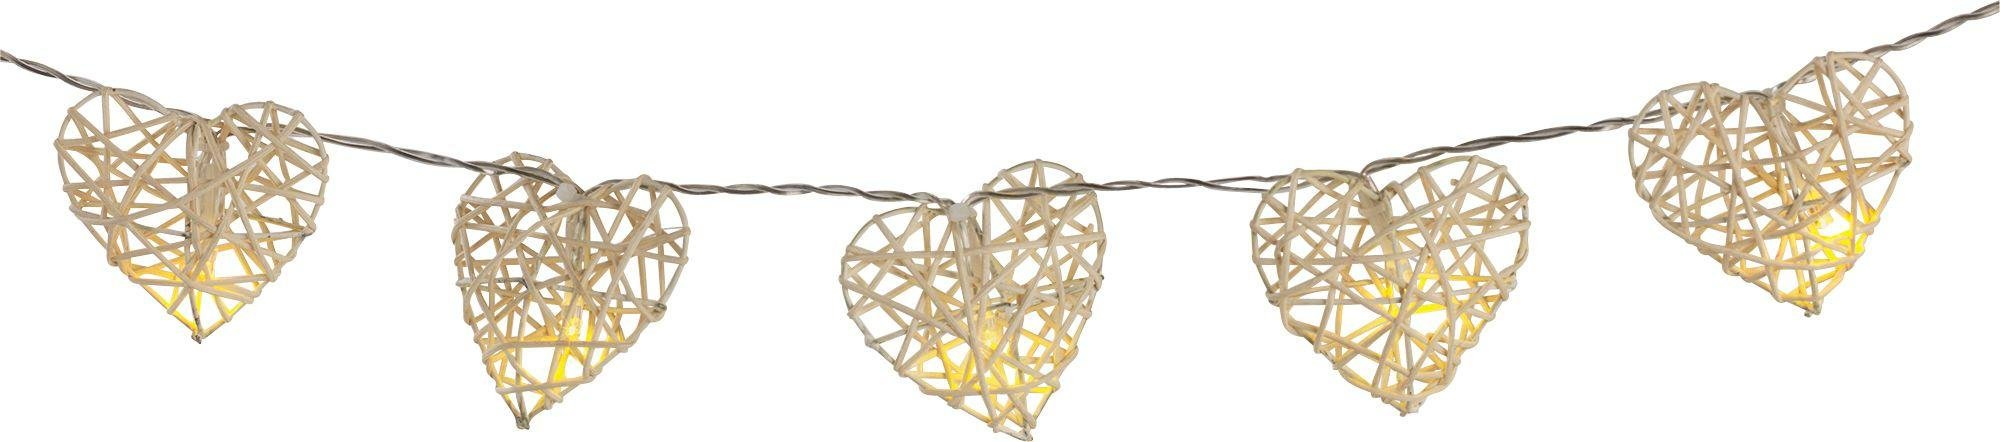 HOME - Rattan Hearts String Lights - Set of 20 lowest price